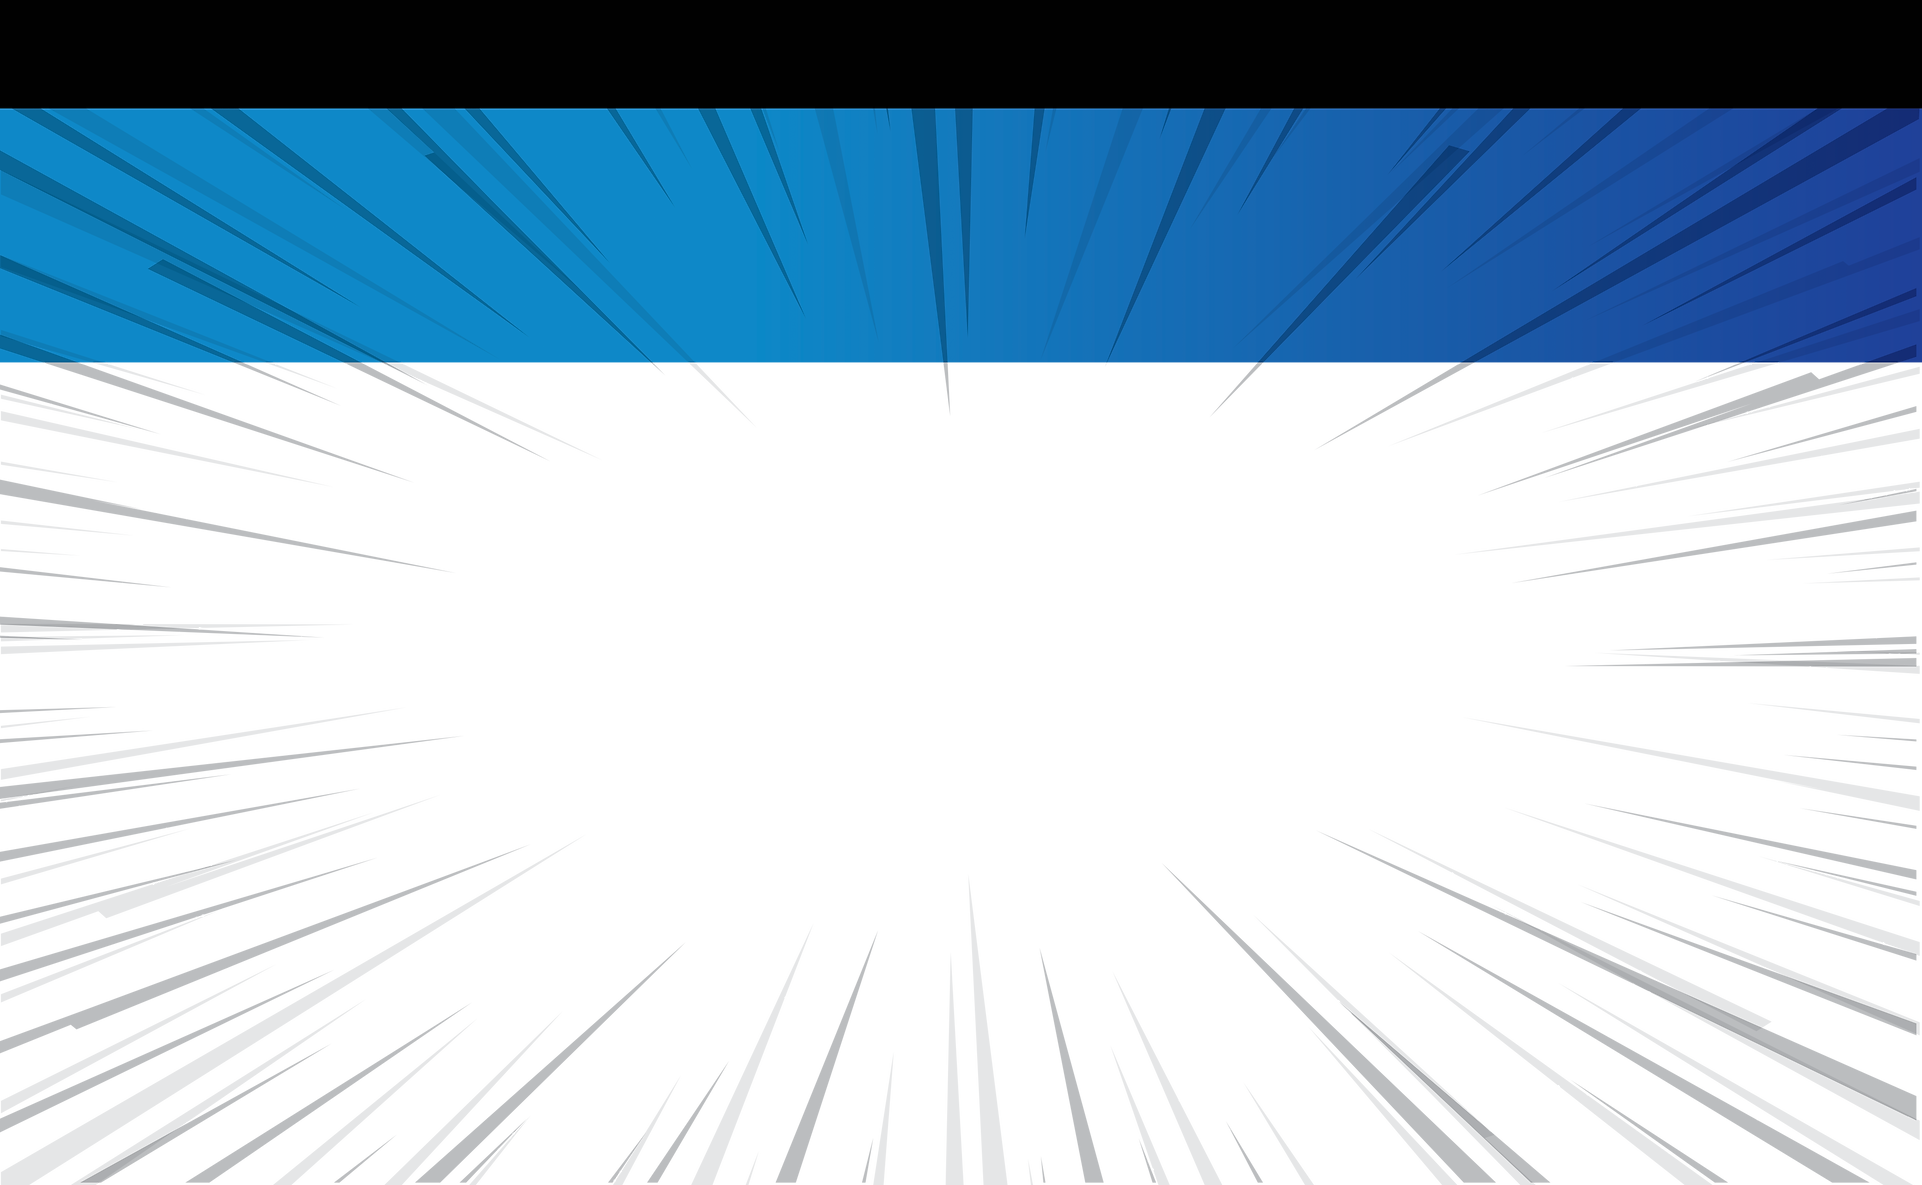 SUPERME_background.png